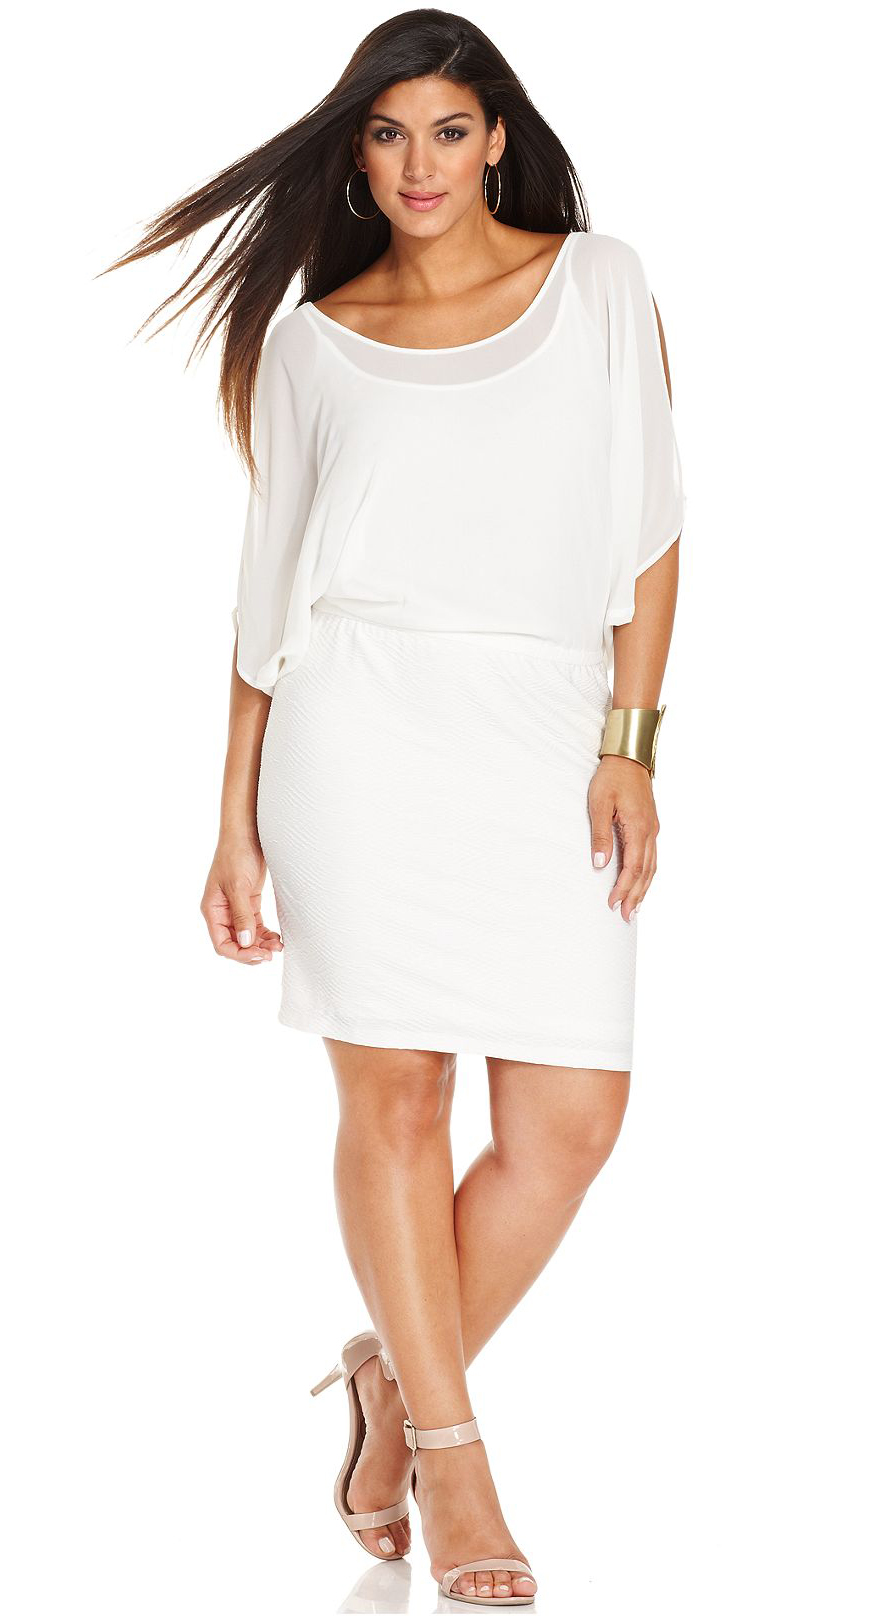 Plus Size White Dresses Macy 2014-2015